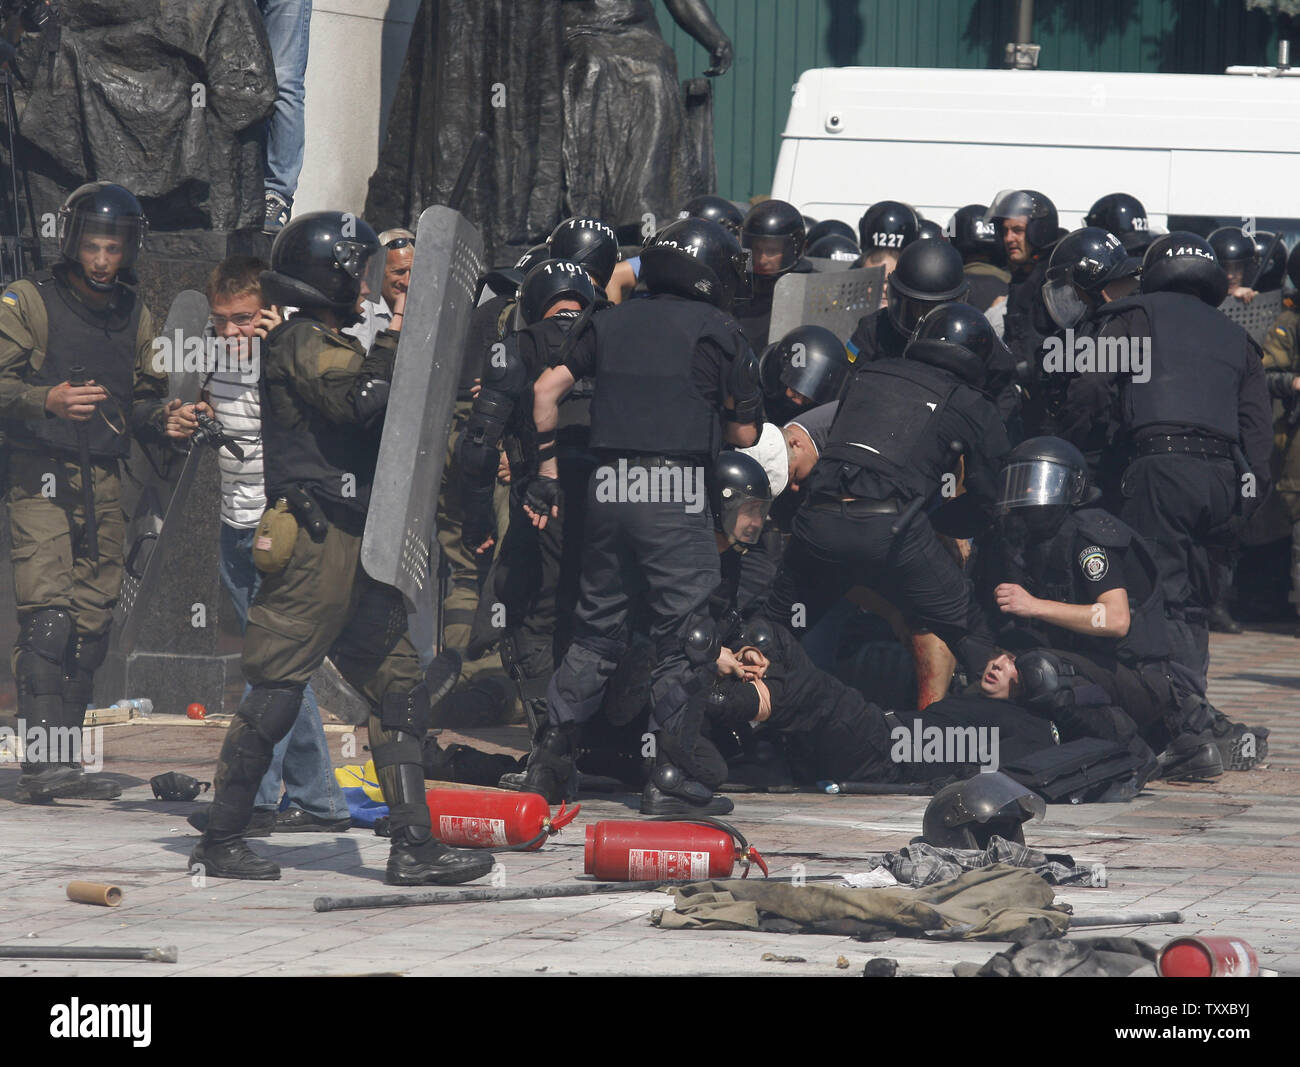 Some Ukrainian riot police officer are injured after a grenade blast during a clash with protesters outside the parliament in Kiev on August 31, 2015. Hundreds of people gathered in front of the parliament to protest against an approved  constitutional amendment on decentralization to separatist regions.   Photo by Ivan Vakolenko/UPI Stock Photo